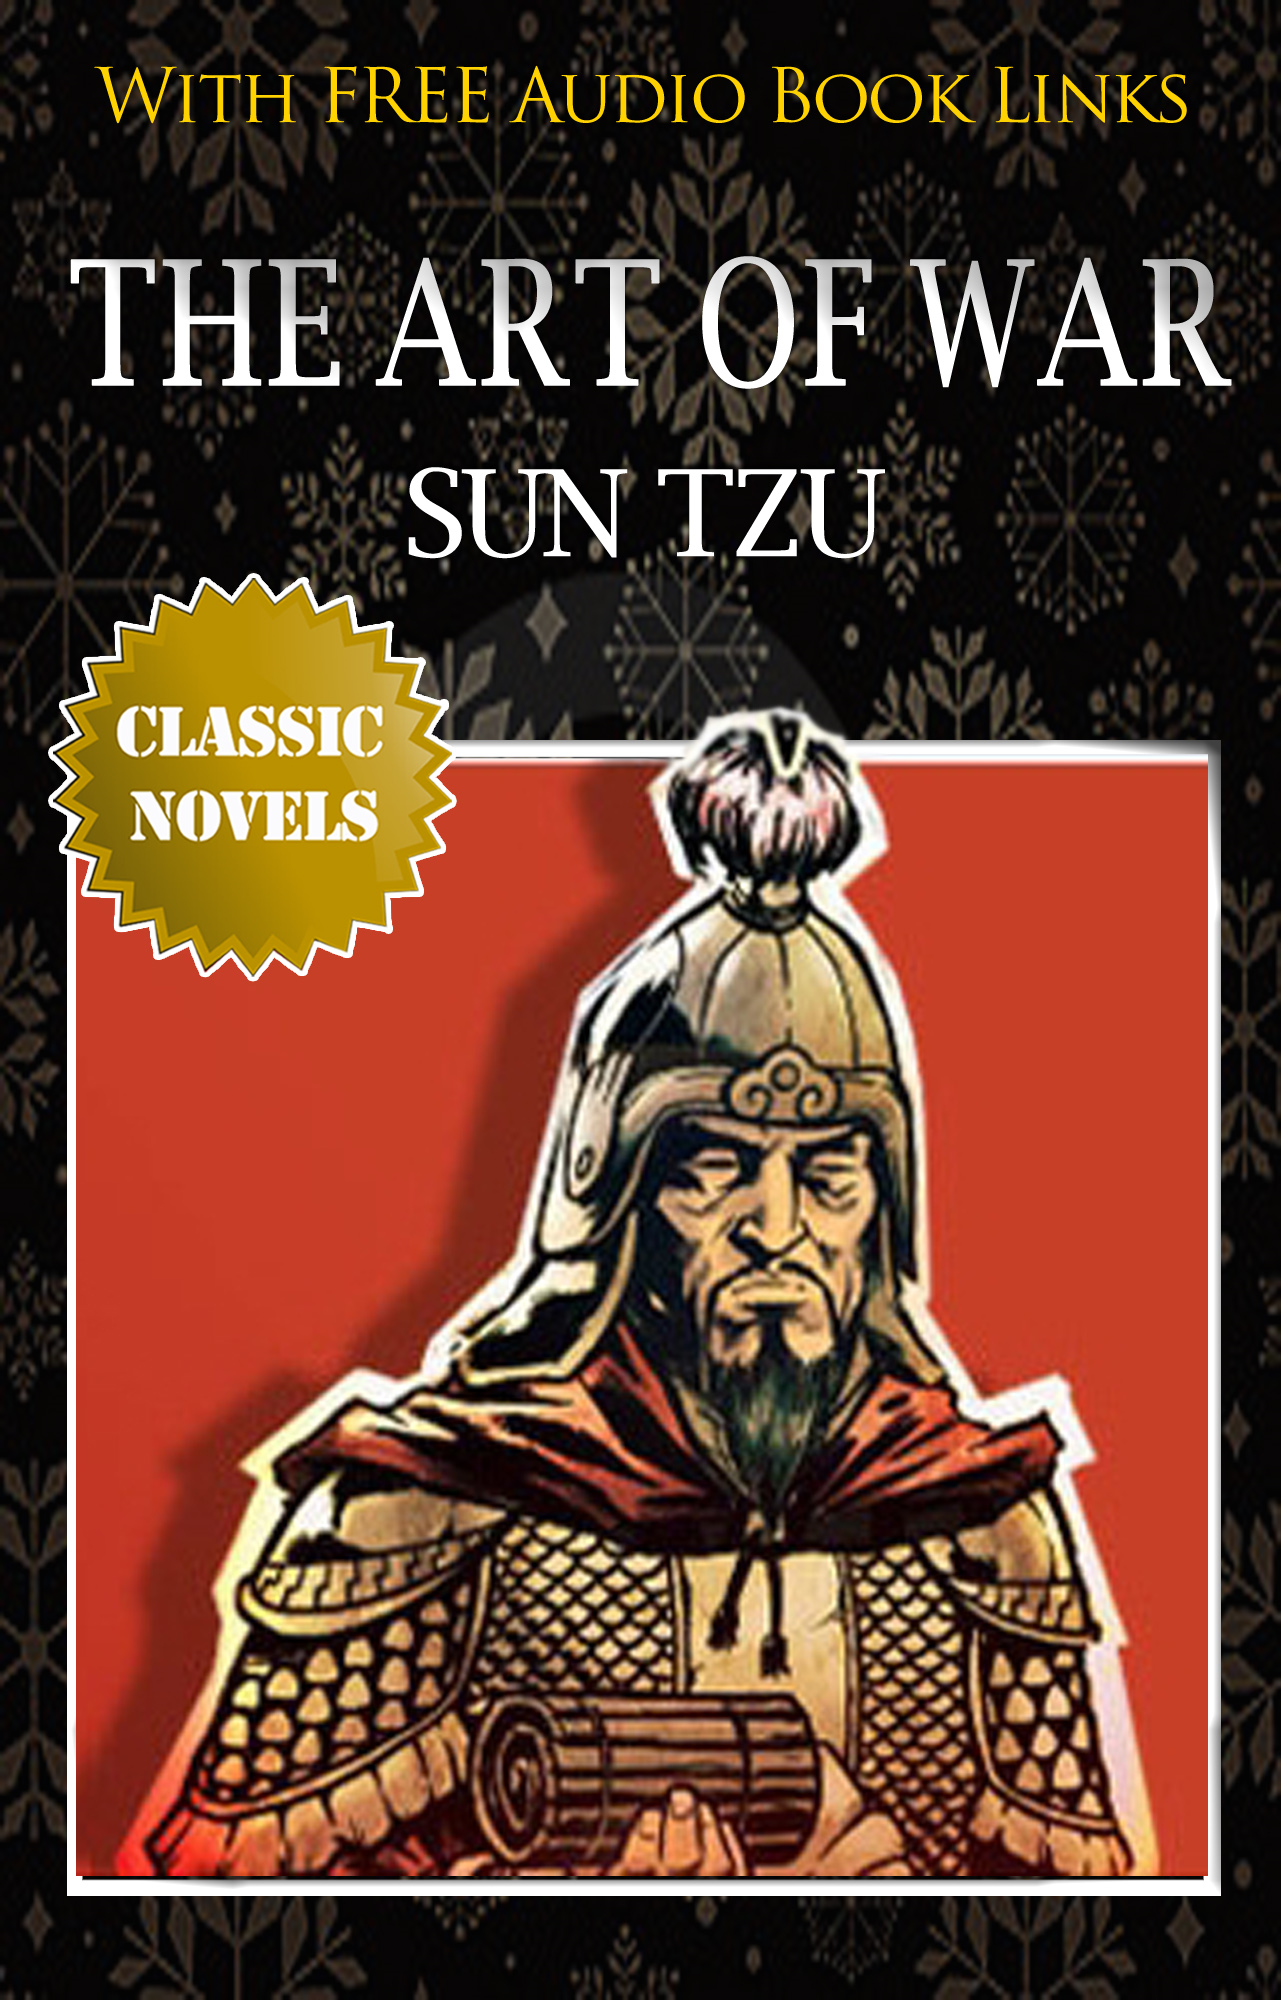 THE ART OF WAR  Classic Novels: New Illustrated [Free Audiobook Links] By: SUN TZU